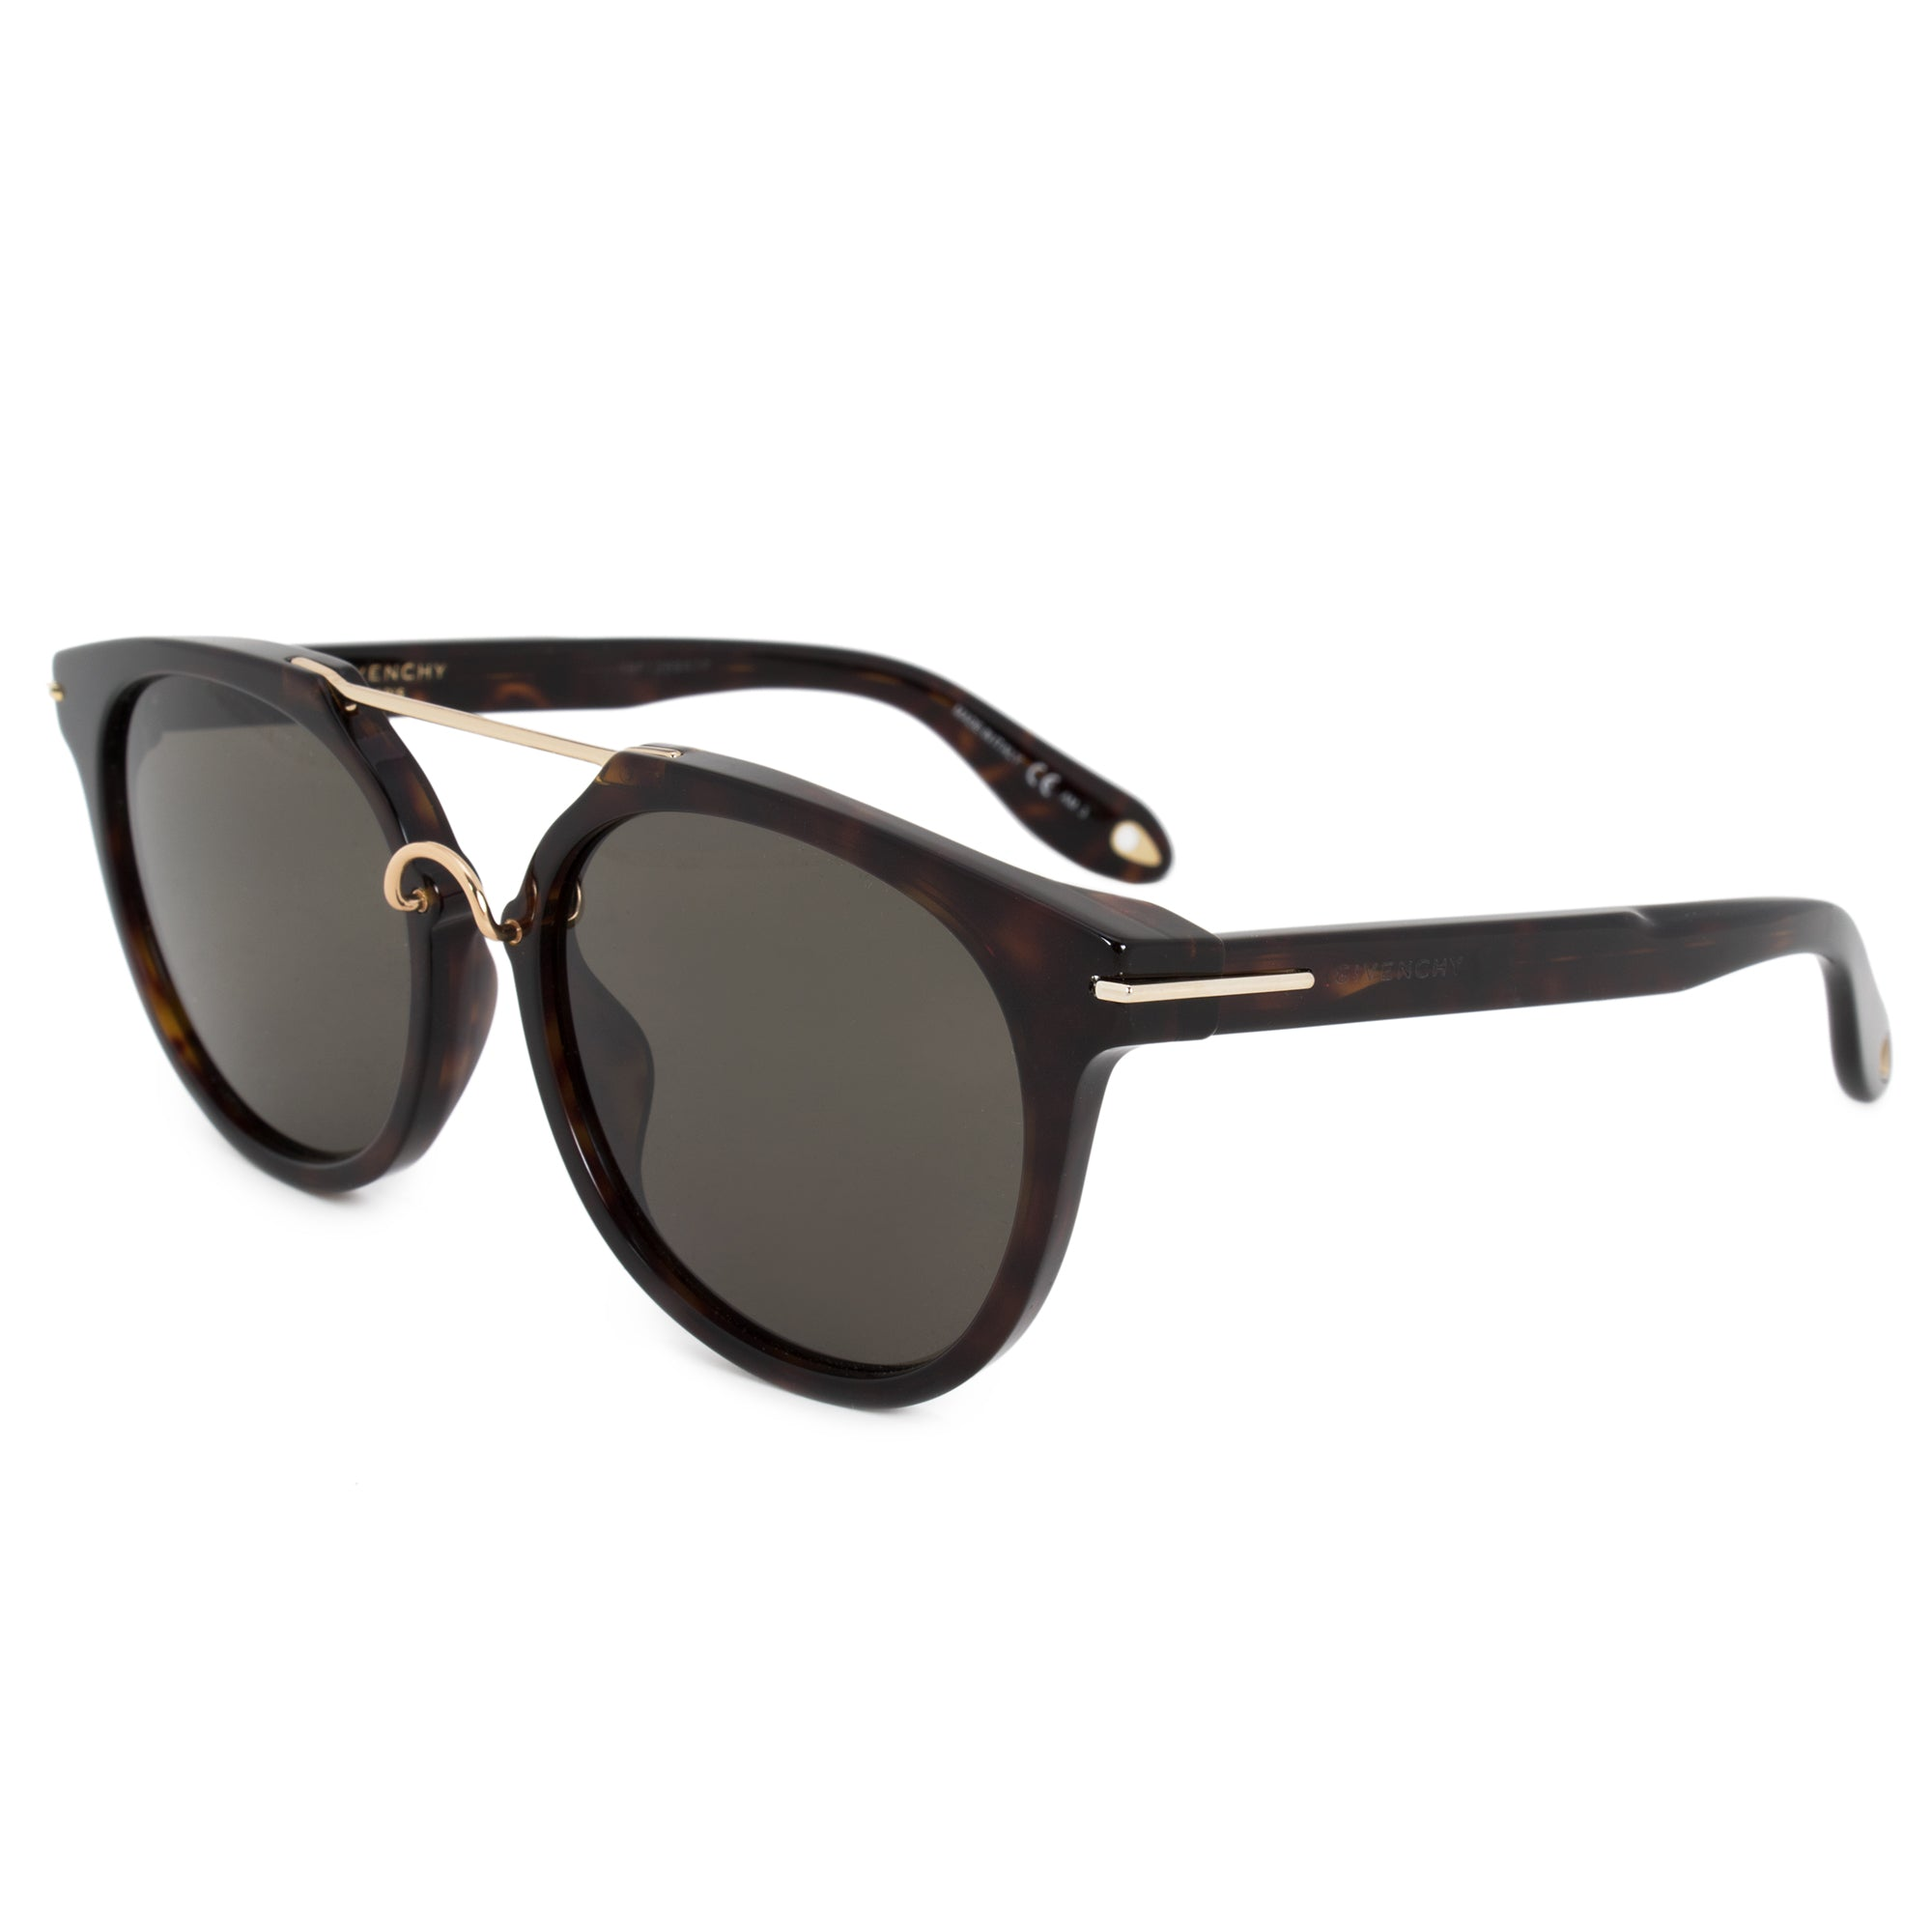 Givenchy Oval Sunglasses GV7034/S 086/70 54